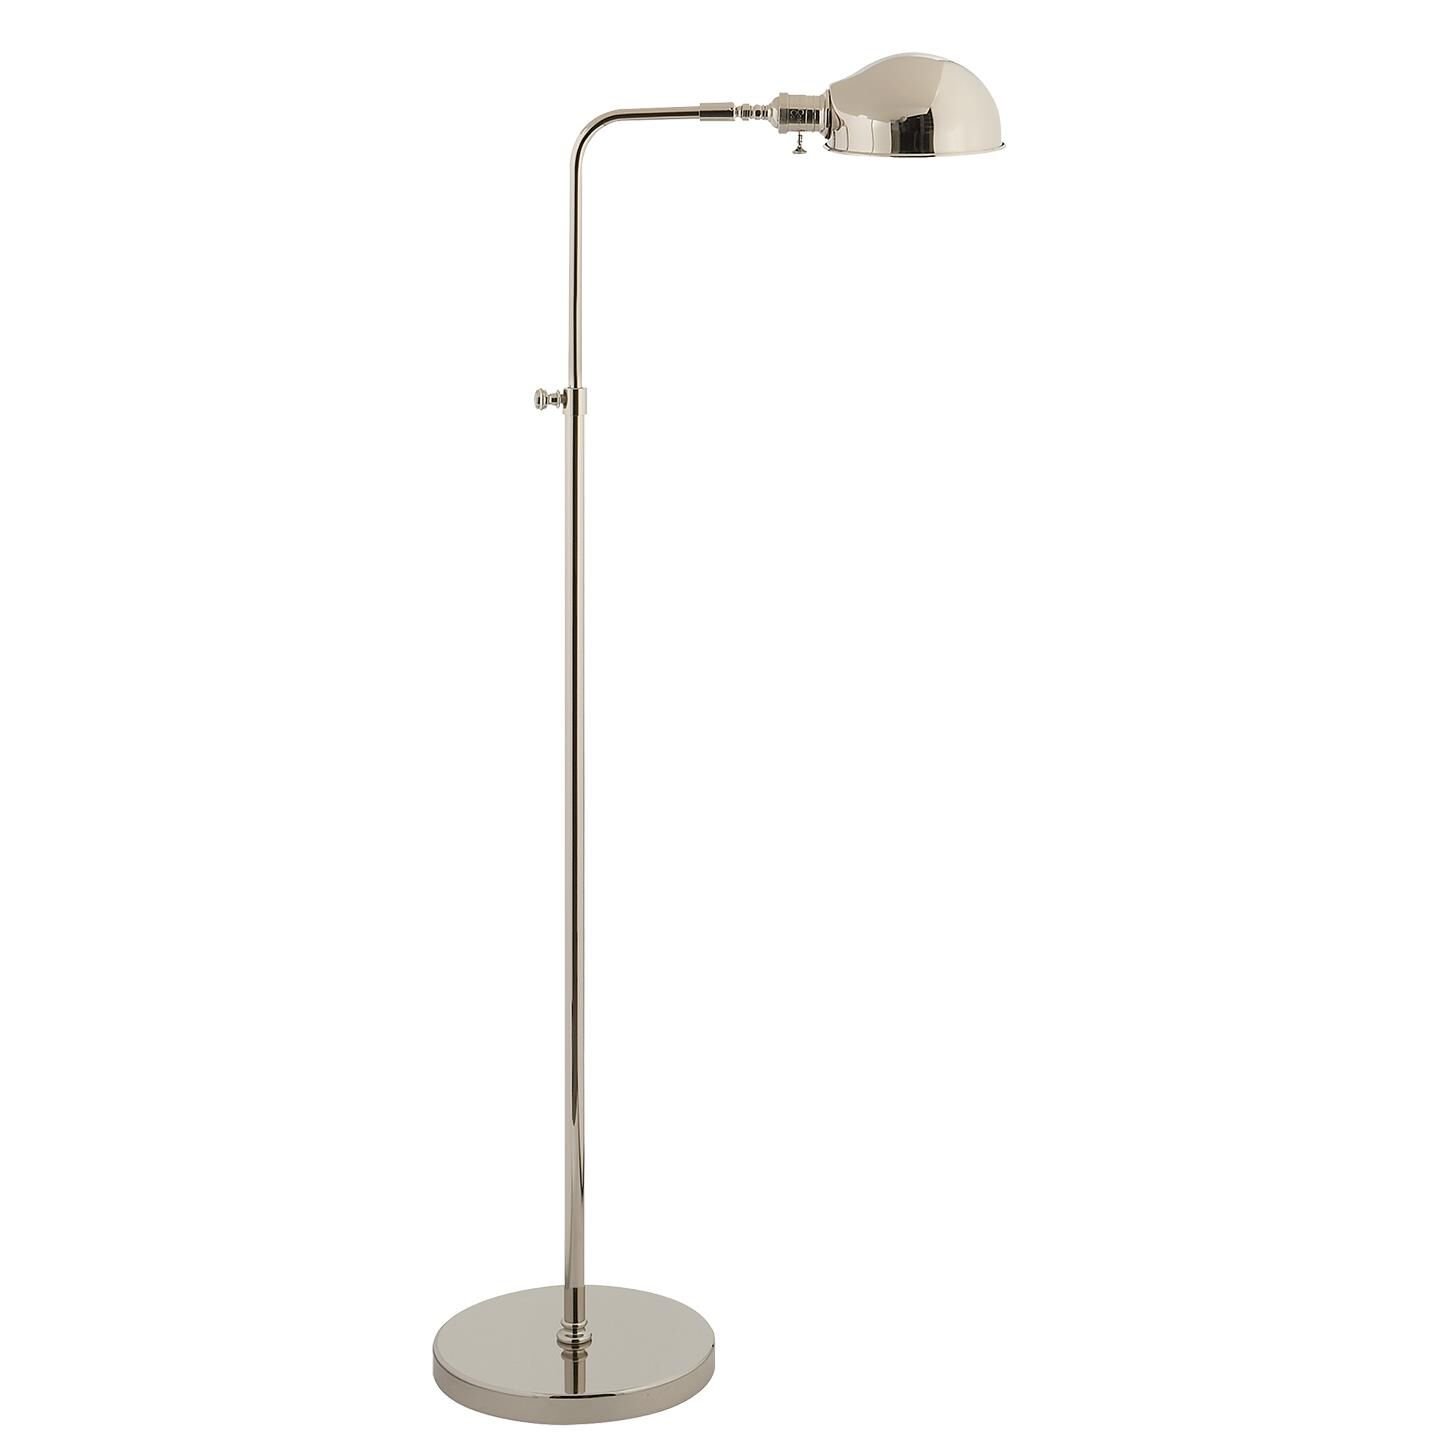 Visual Comfort and Co. Studio Vc Old Pharmacy Floor 36 Inch Reading Lamp Old Pharmacy Floor - S 1100PN - Transitional Reading Lamp